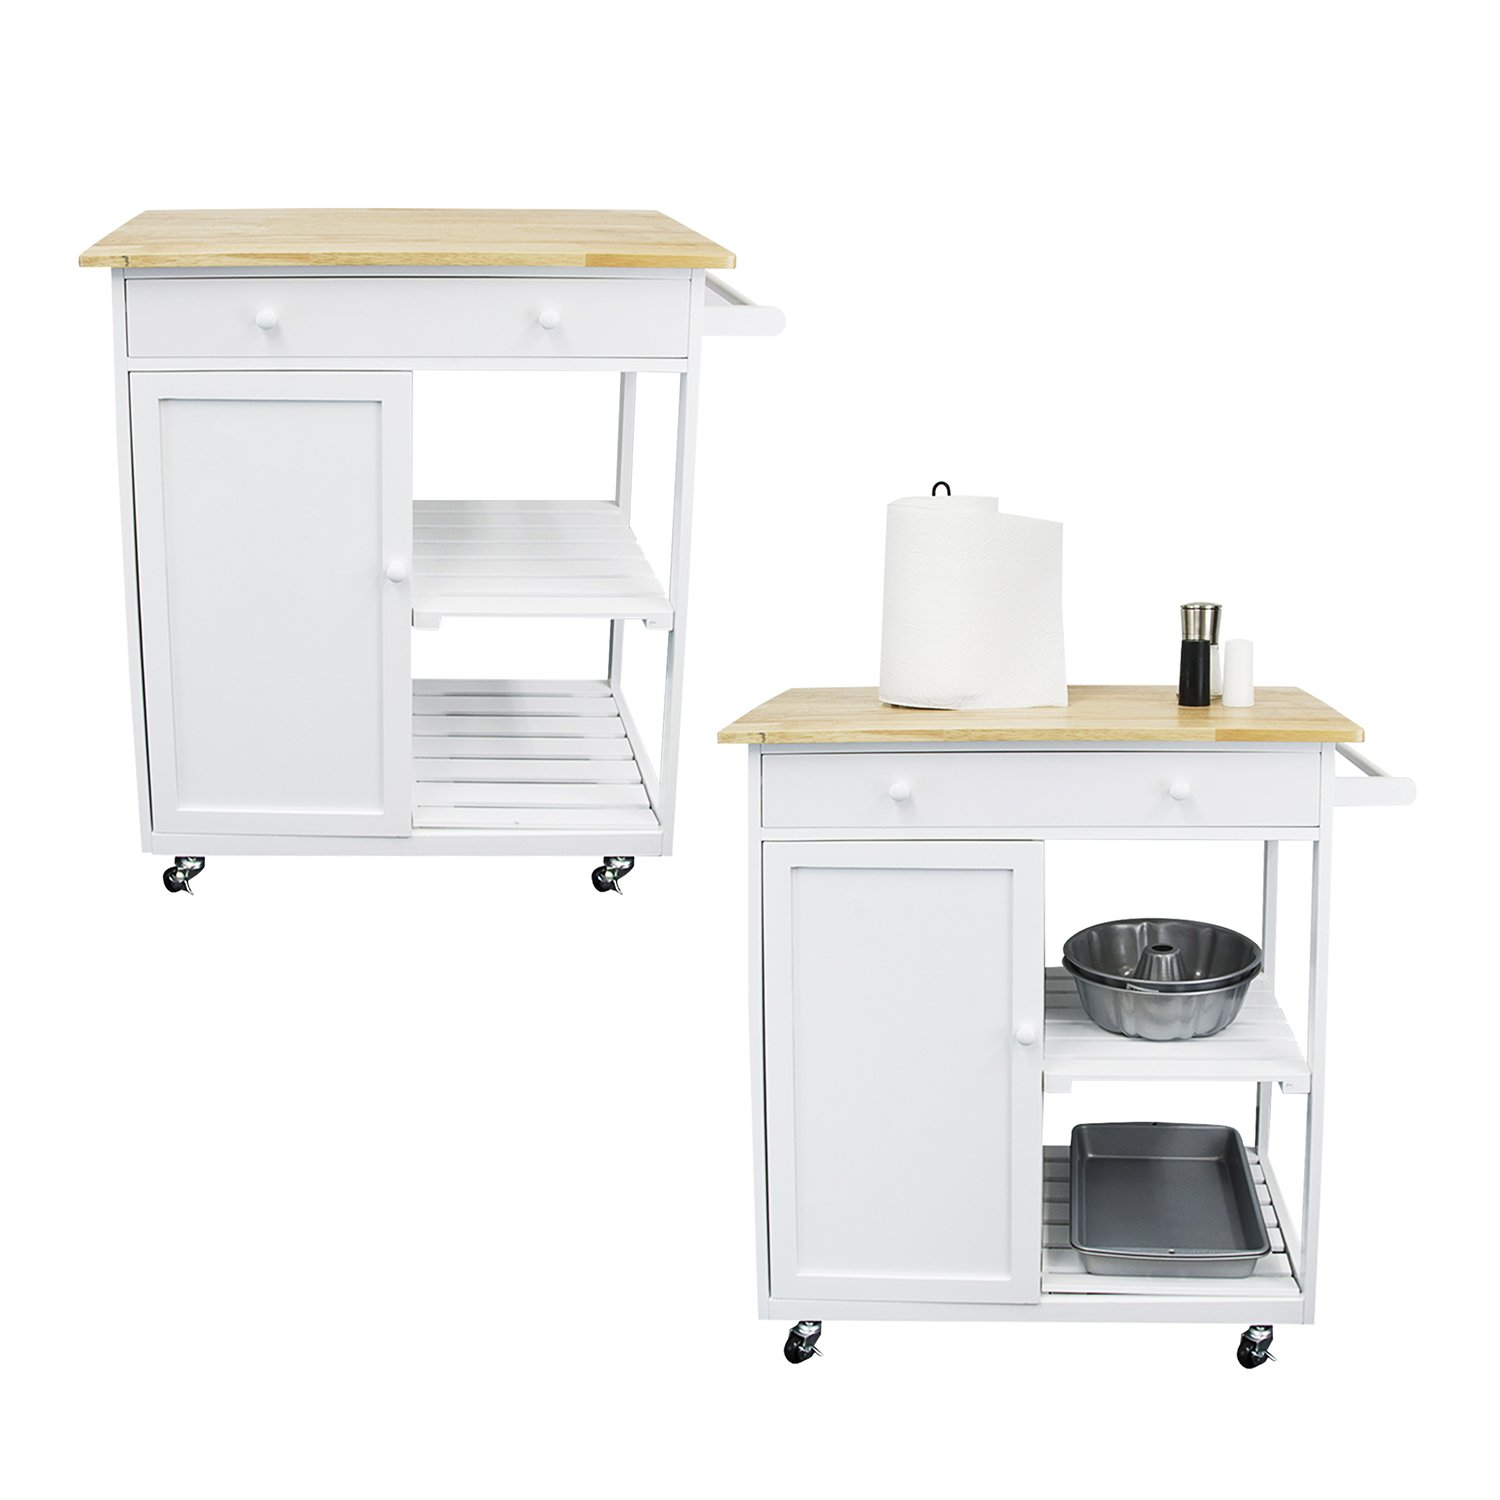 Houseables Kitchen Cart, Microwave Stand And Carts, White, 17.38'' (Length) x 29 ½'' (Width) x 34'' (Height), MDF Frame, Rolling, Storage Table, Island, Utility, With Wood Top, Drawer, Shelf, Cabinet